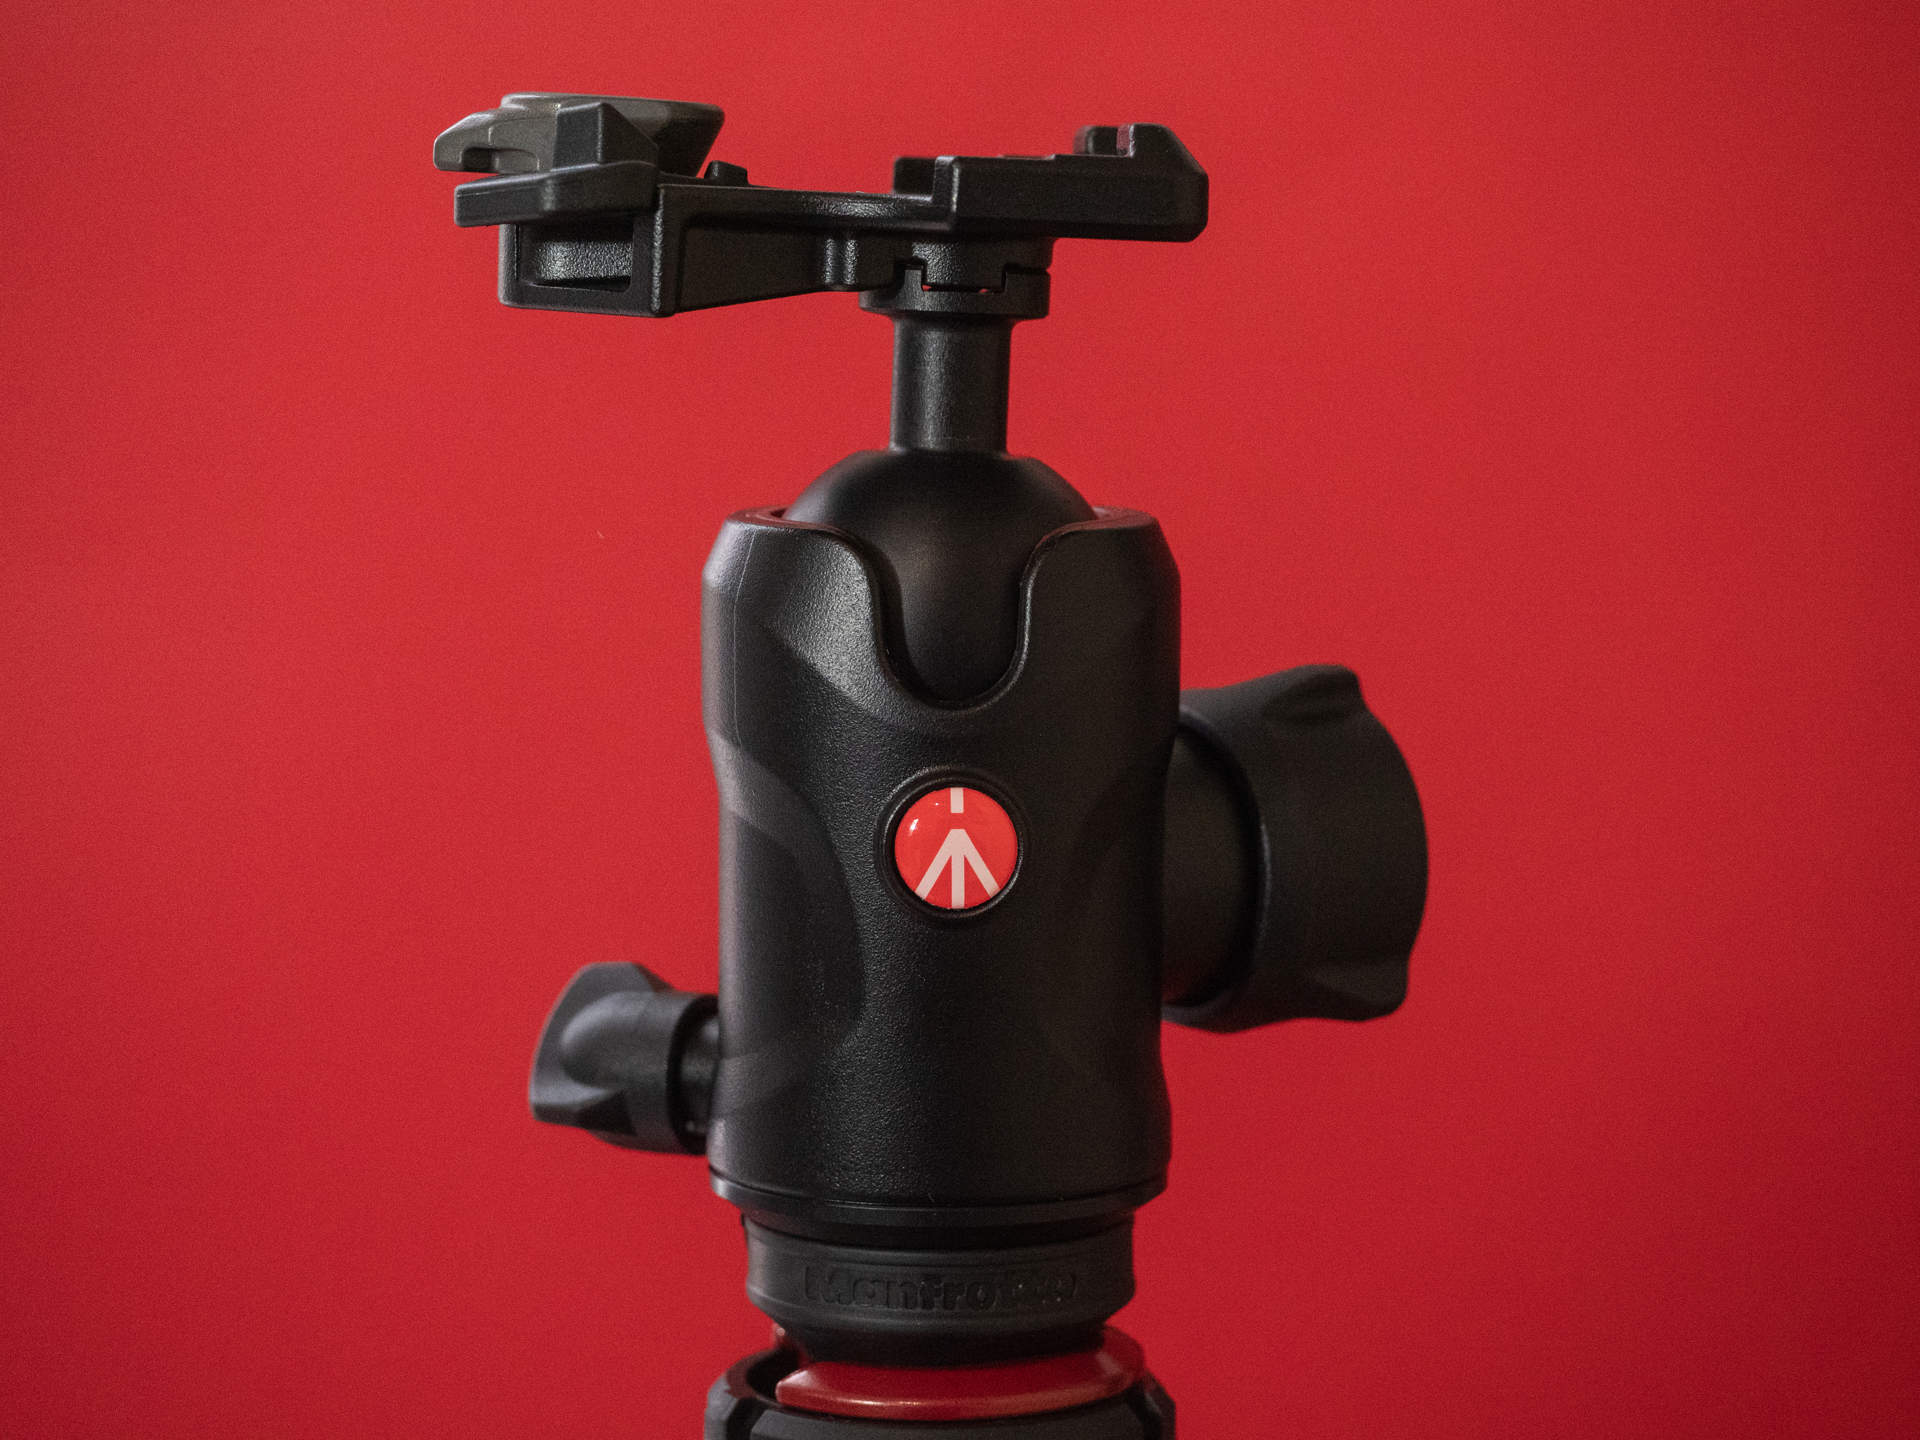 Recensione Manfrotto BeFree GT XPRO 01